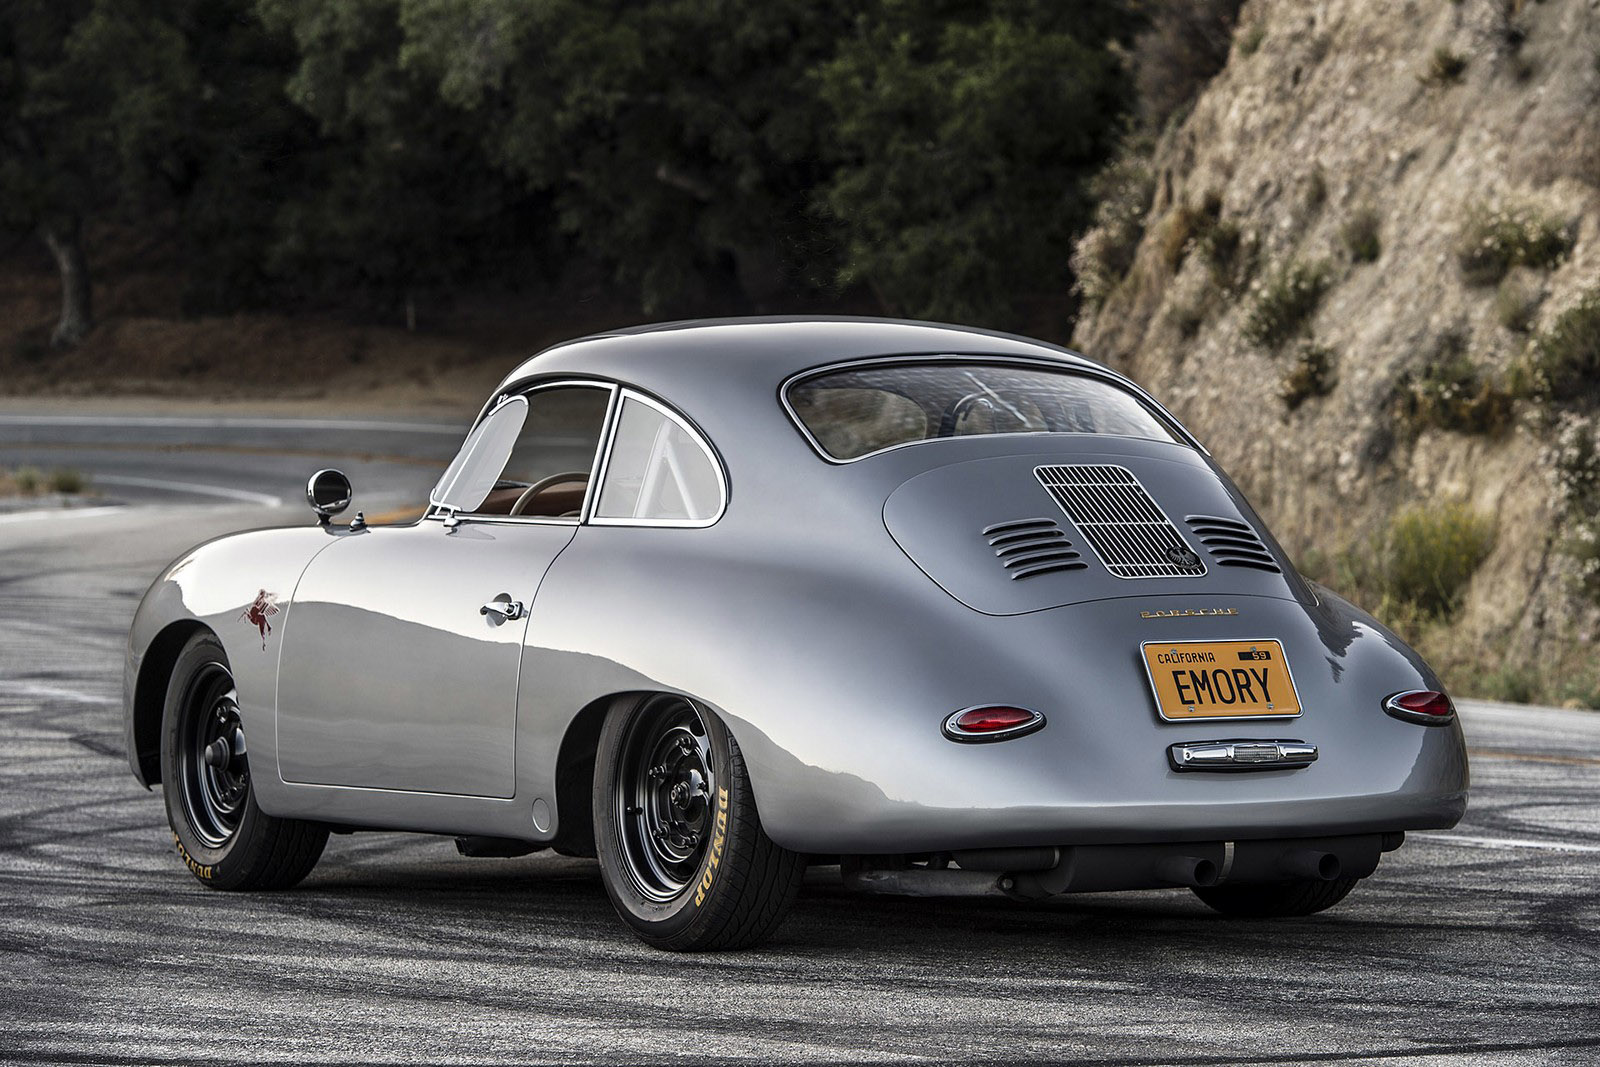 1964 Porsche 356 Cabriolet Emory Outlaw Hypebeast